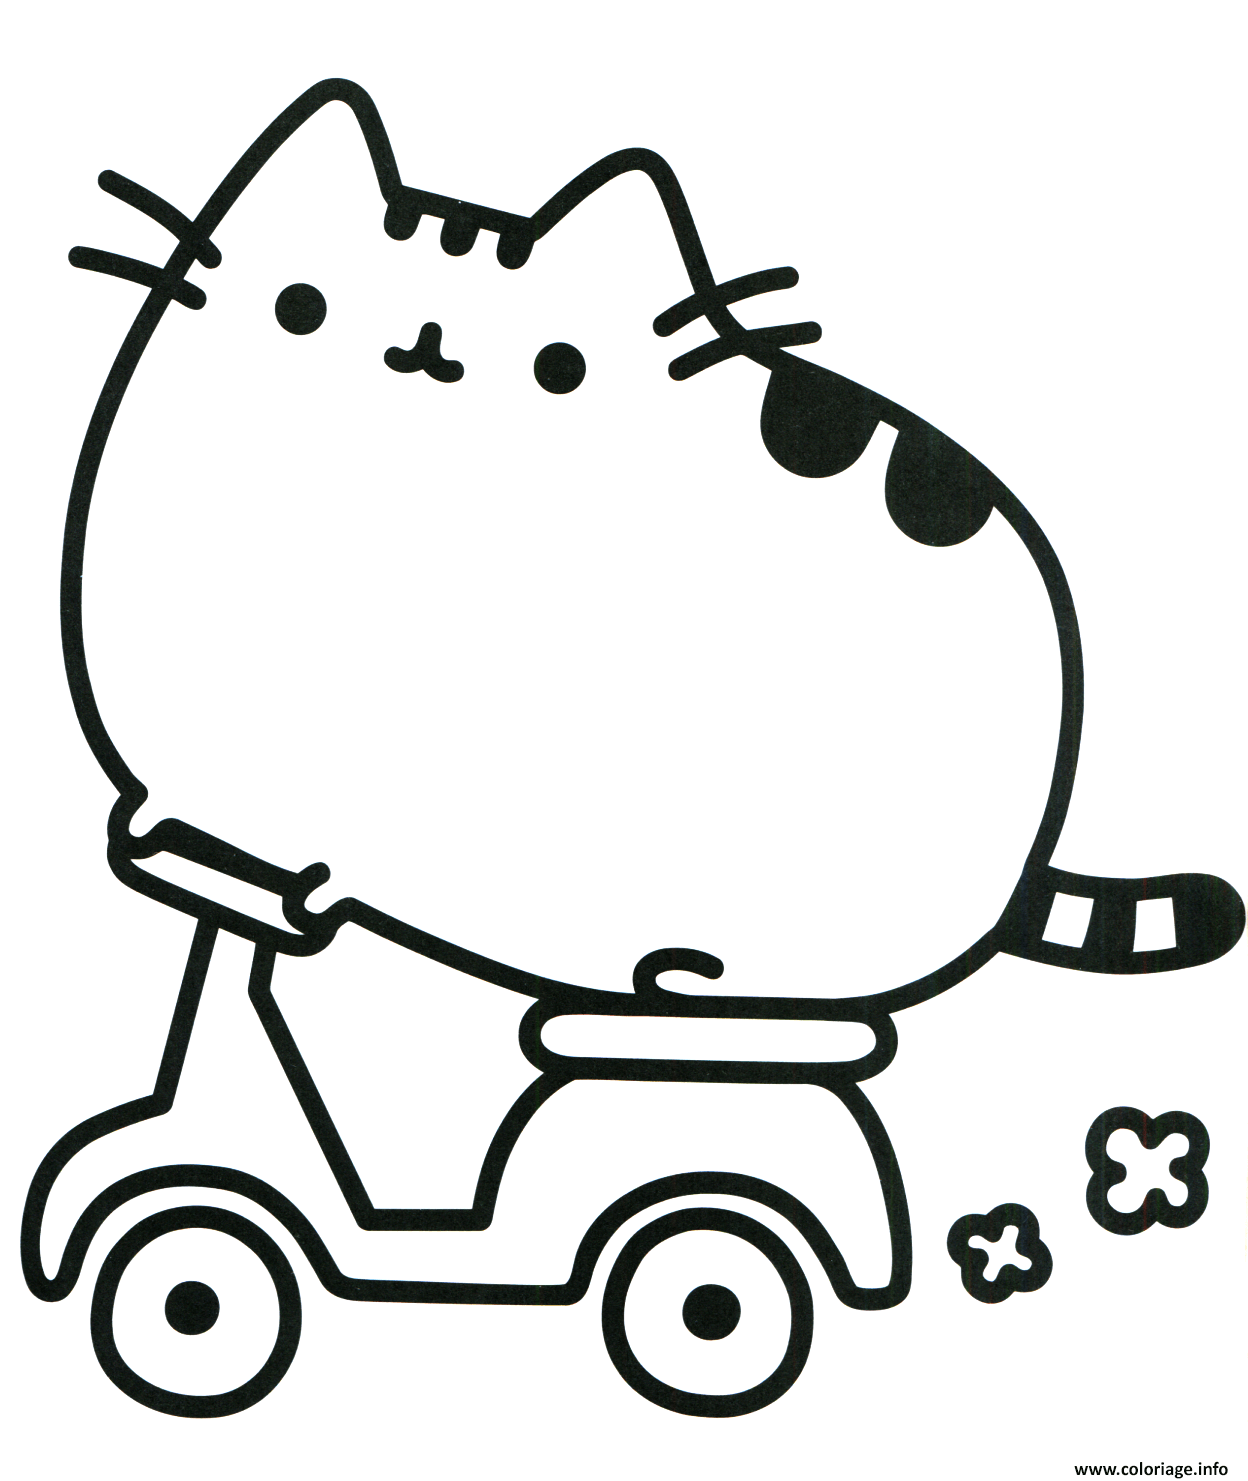 Dessin Pusheen Cat on Scooter Coloriage Gratuit à Imprimer